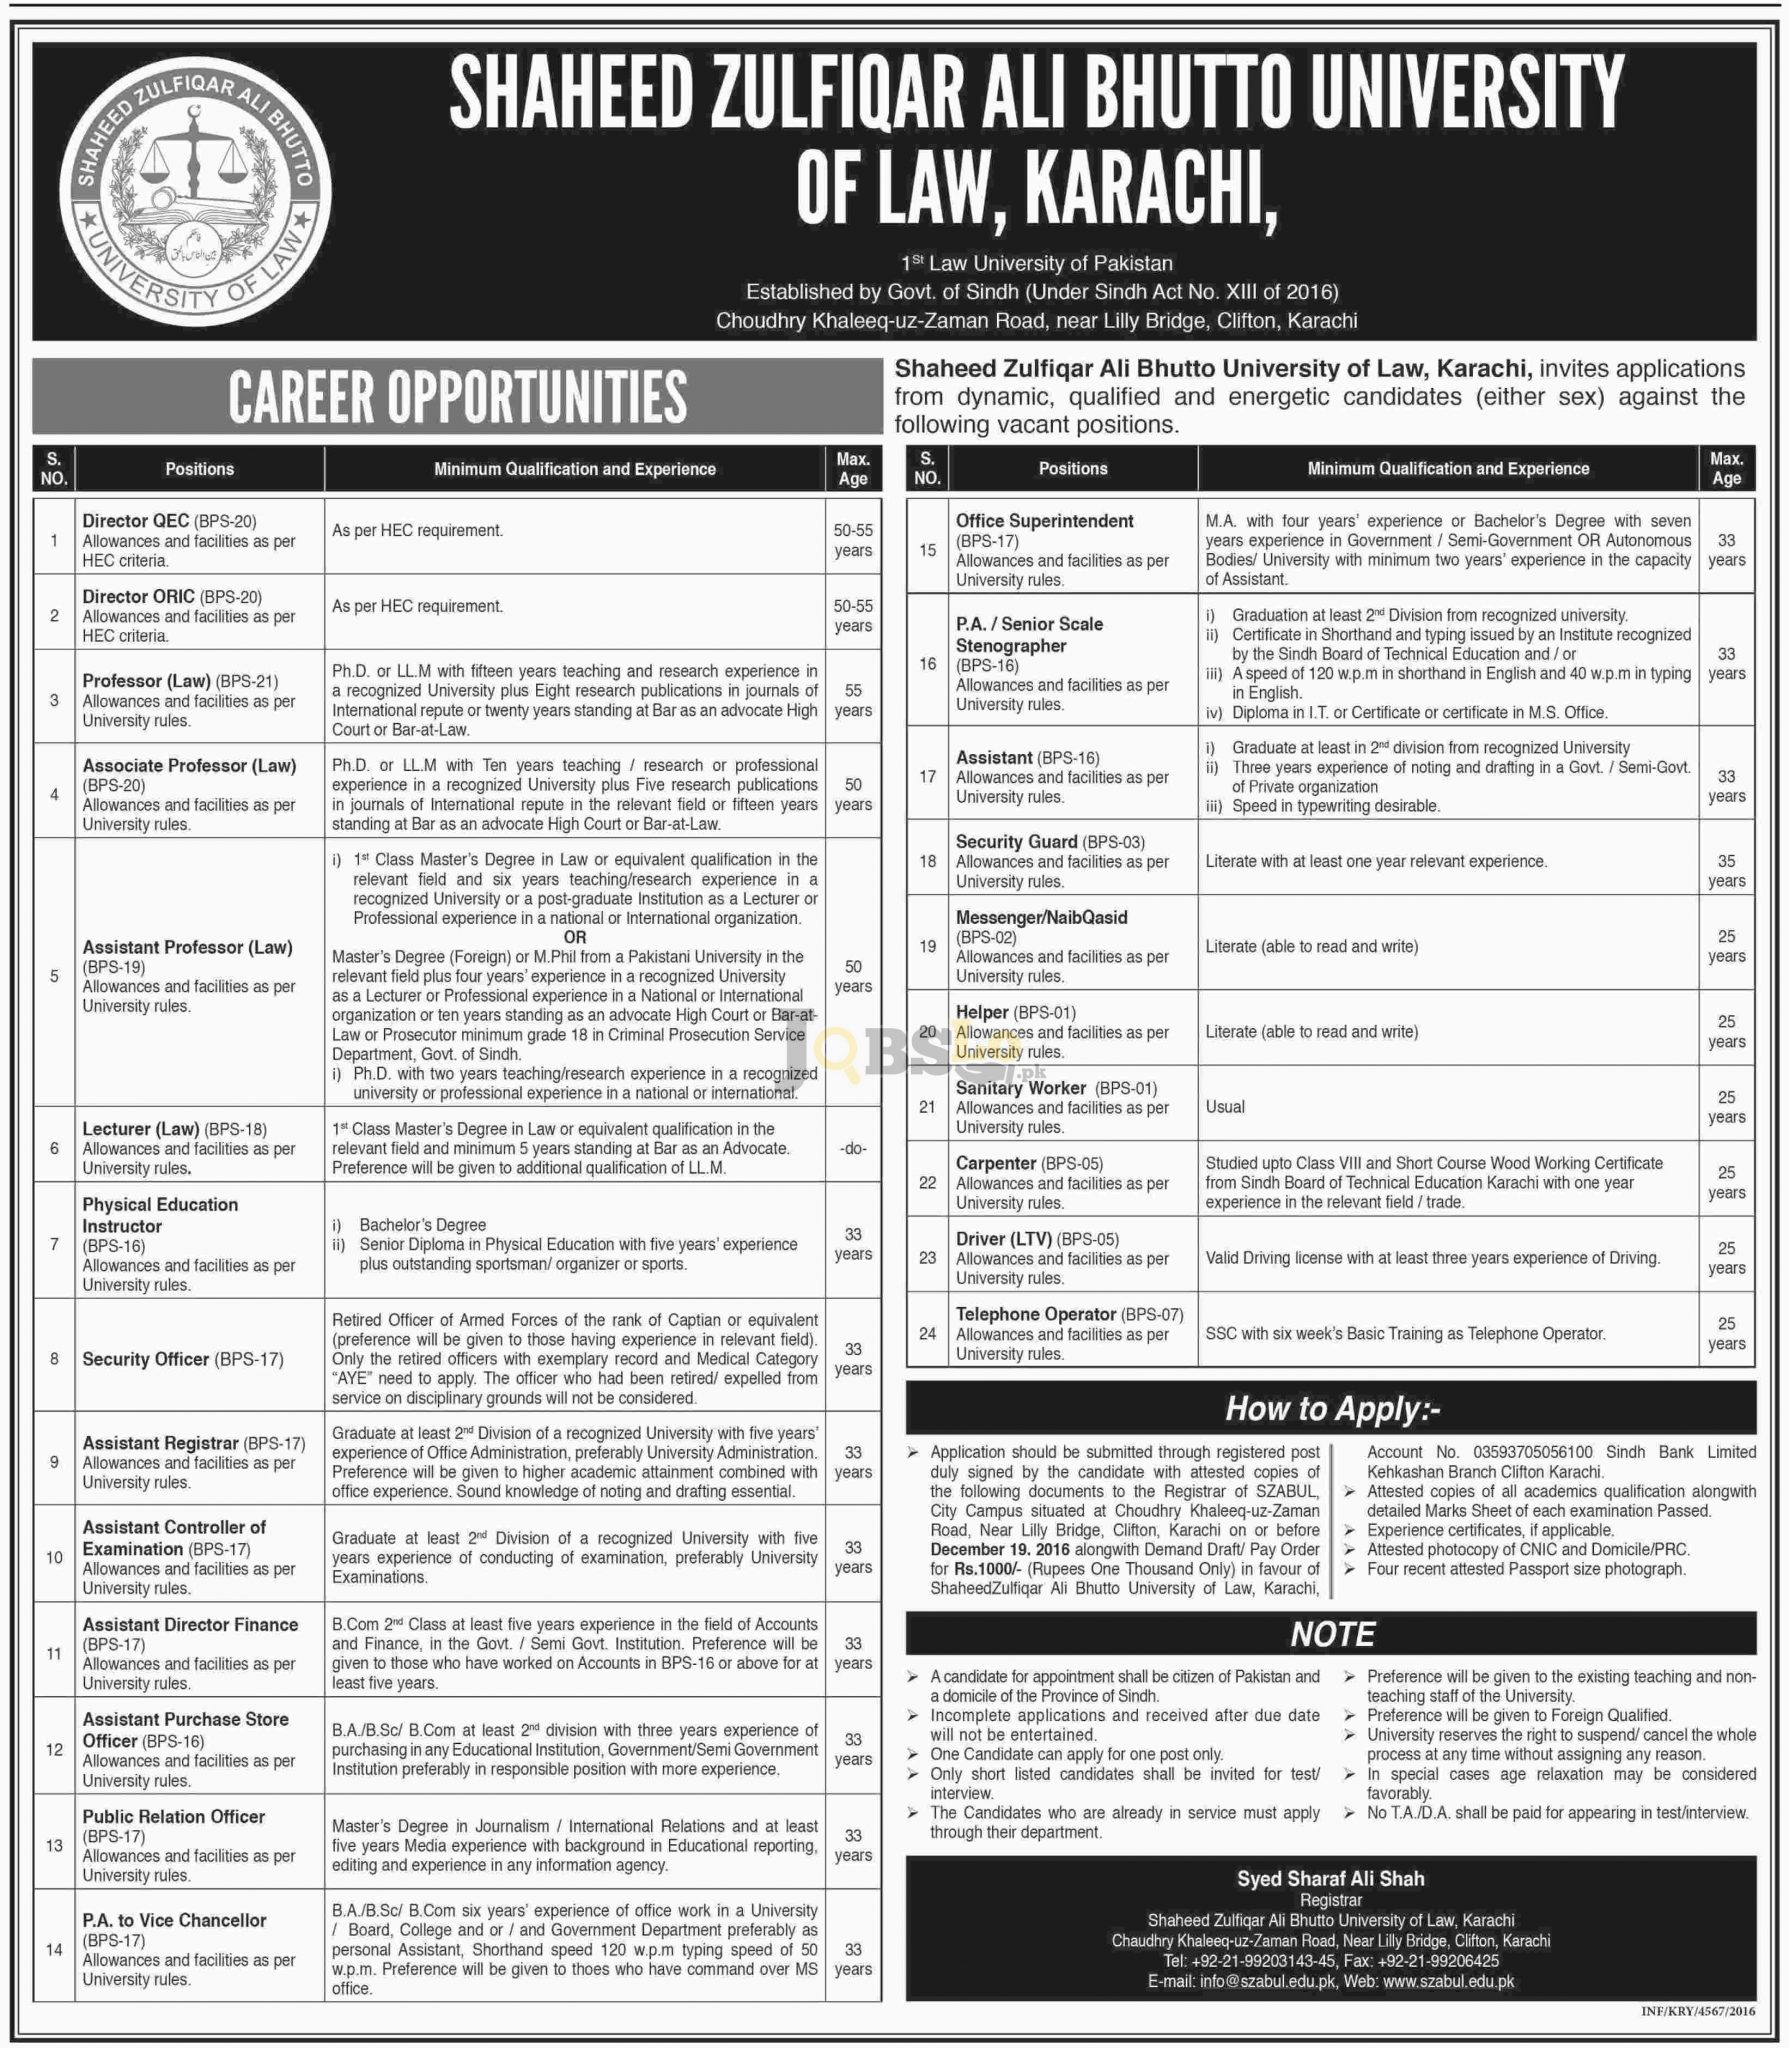 SZAB University of Law Karachi Jobs